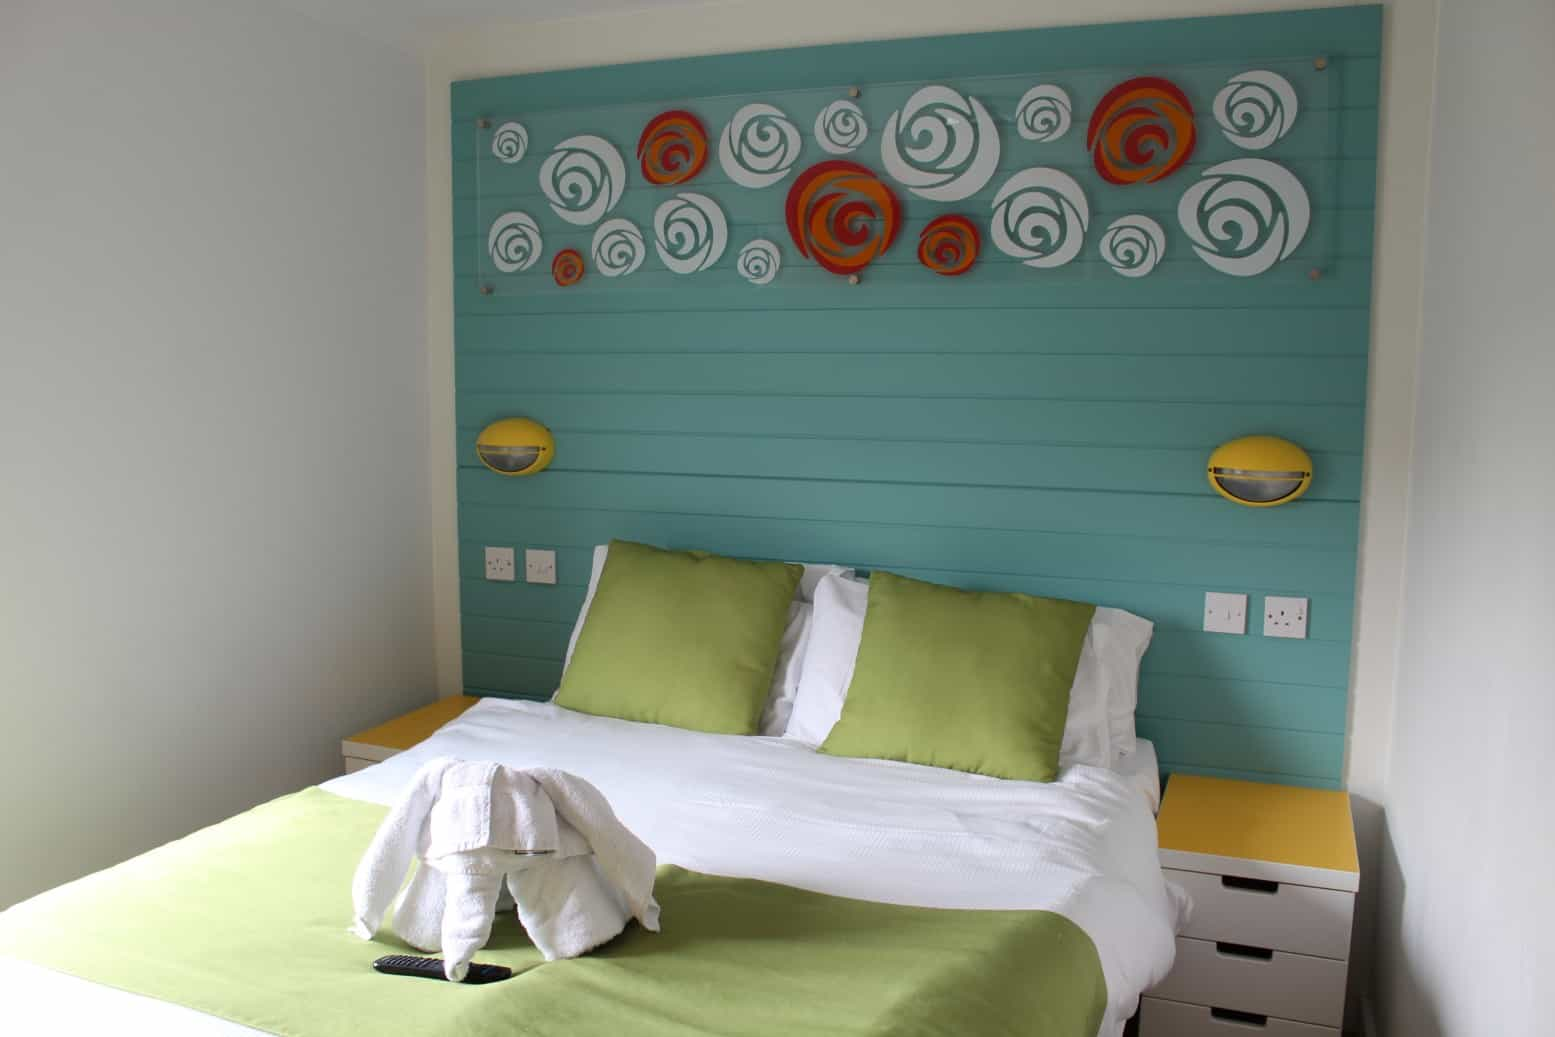 Butlins Skegness Seaside Apartments Reviews and Tour